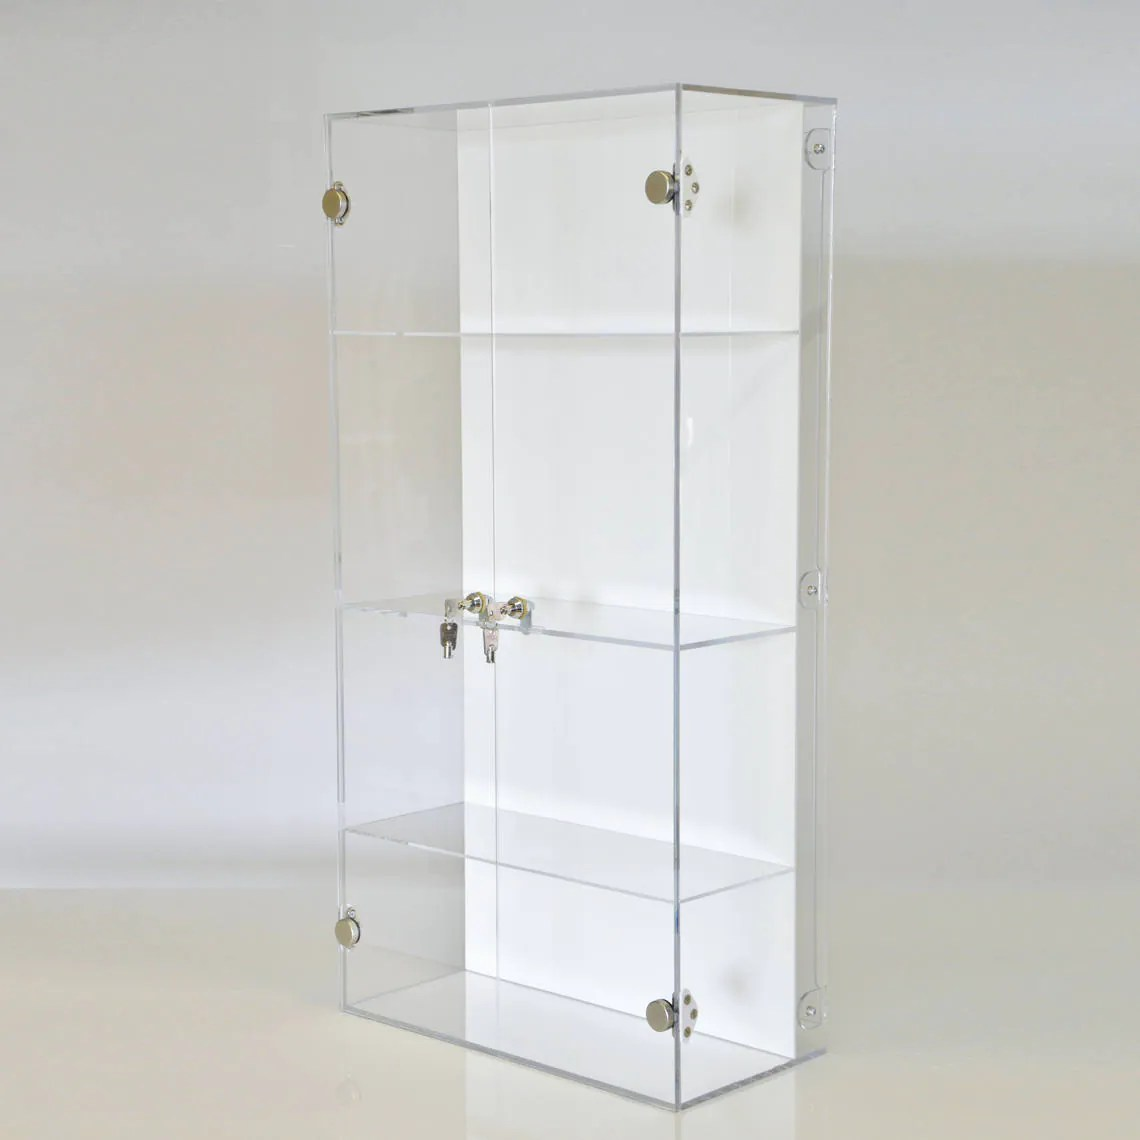 Wall Mounted Display Case Wall Mounted Display Case Clear Display Cabinet Display Shelving Unit Premium Perspex Acrylic Manufactured In The Uk